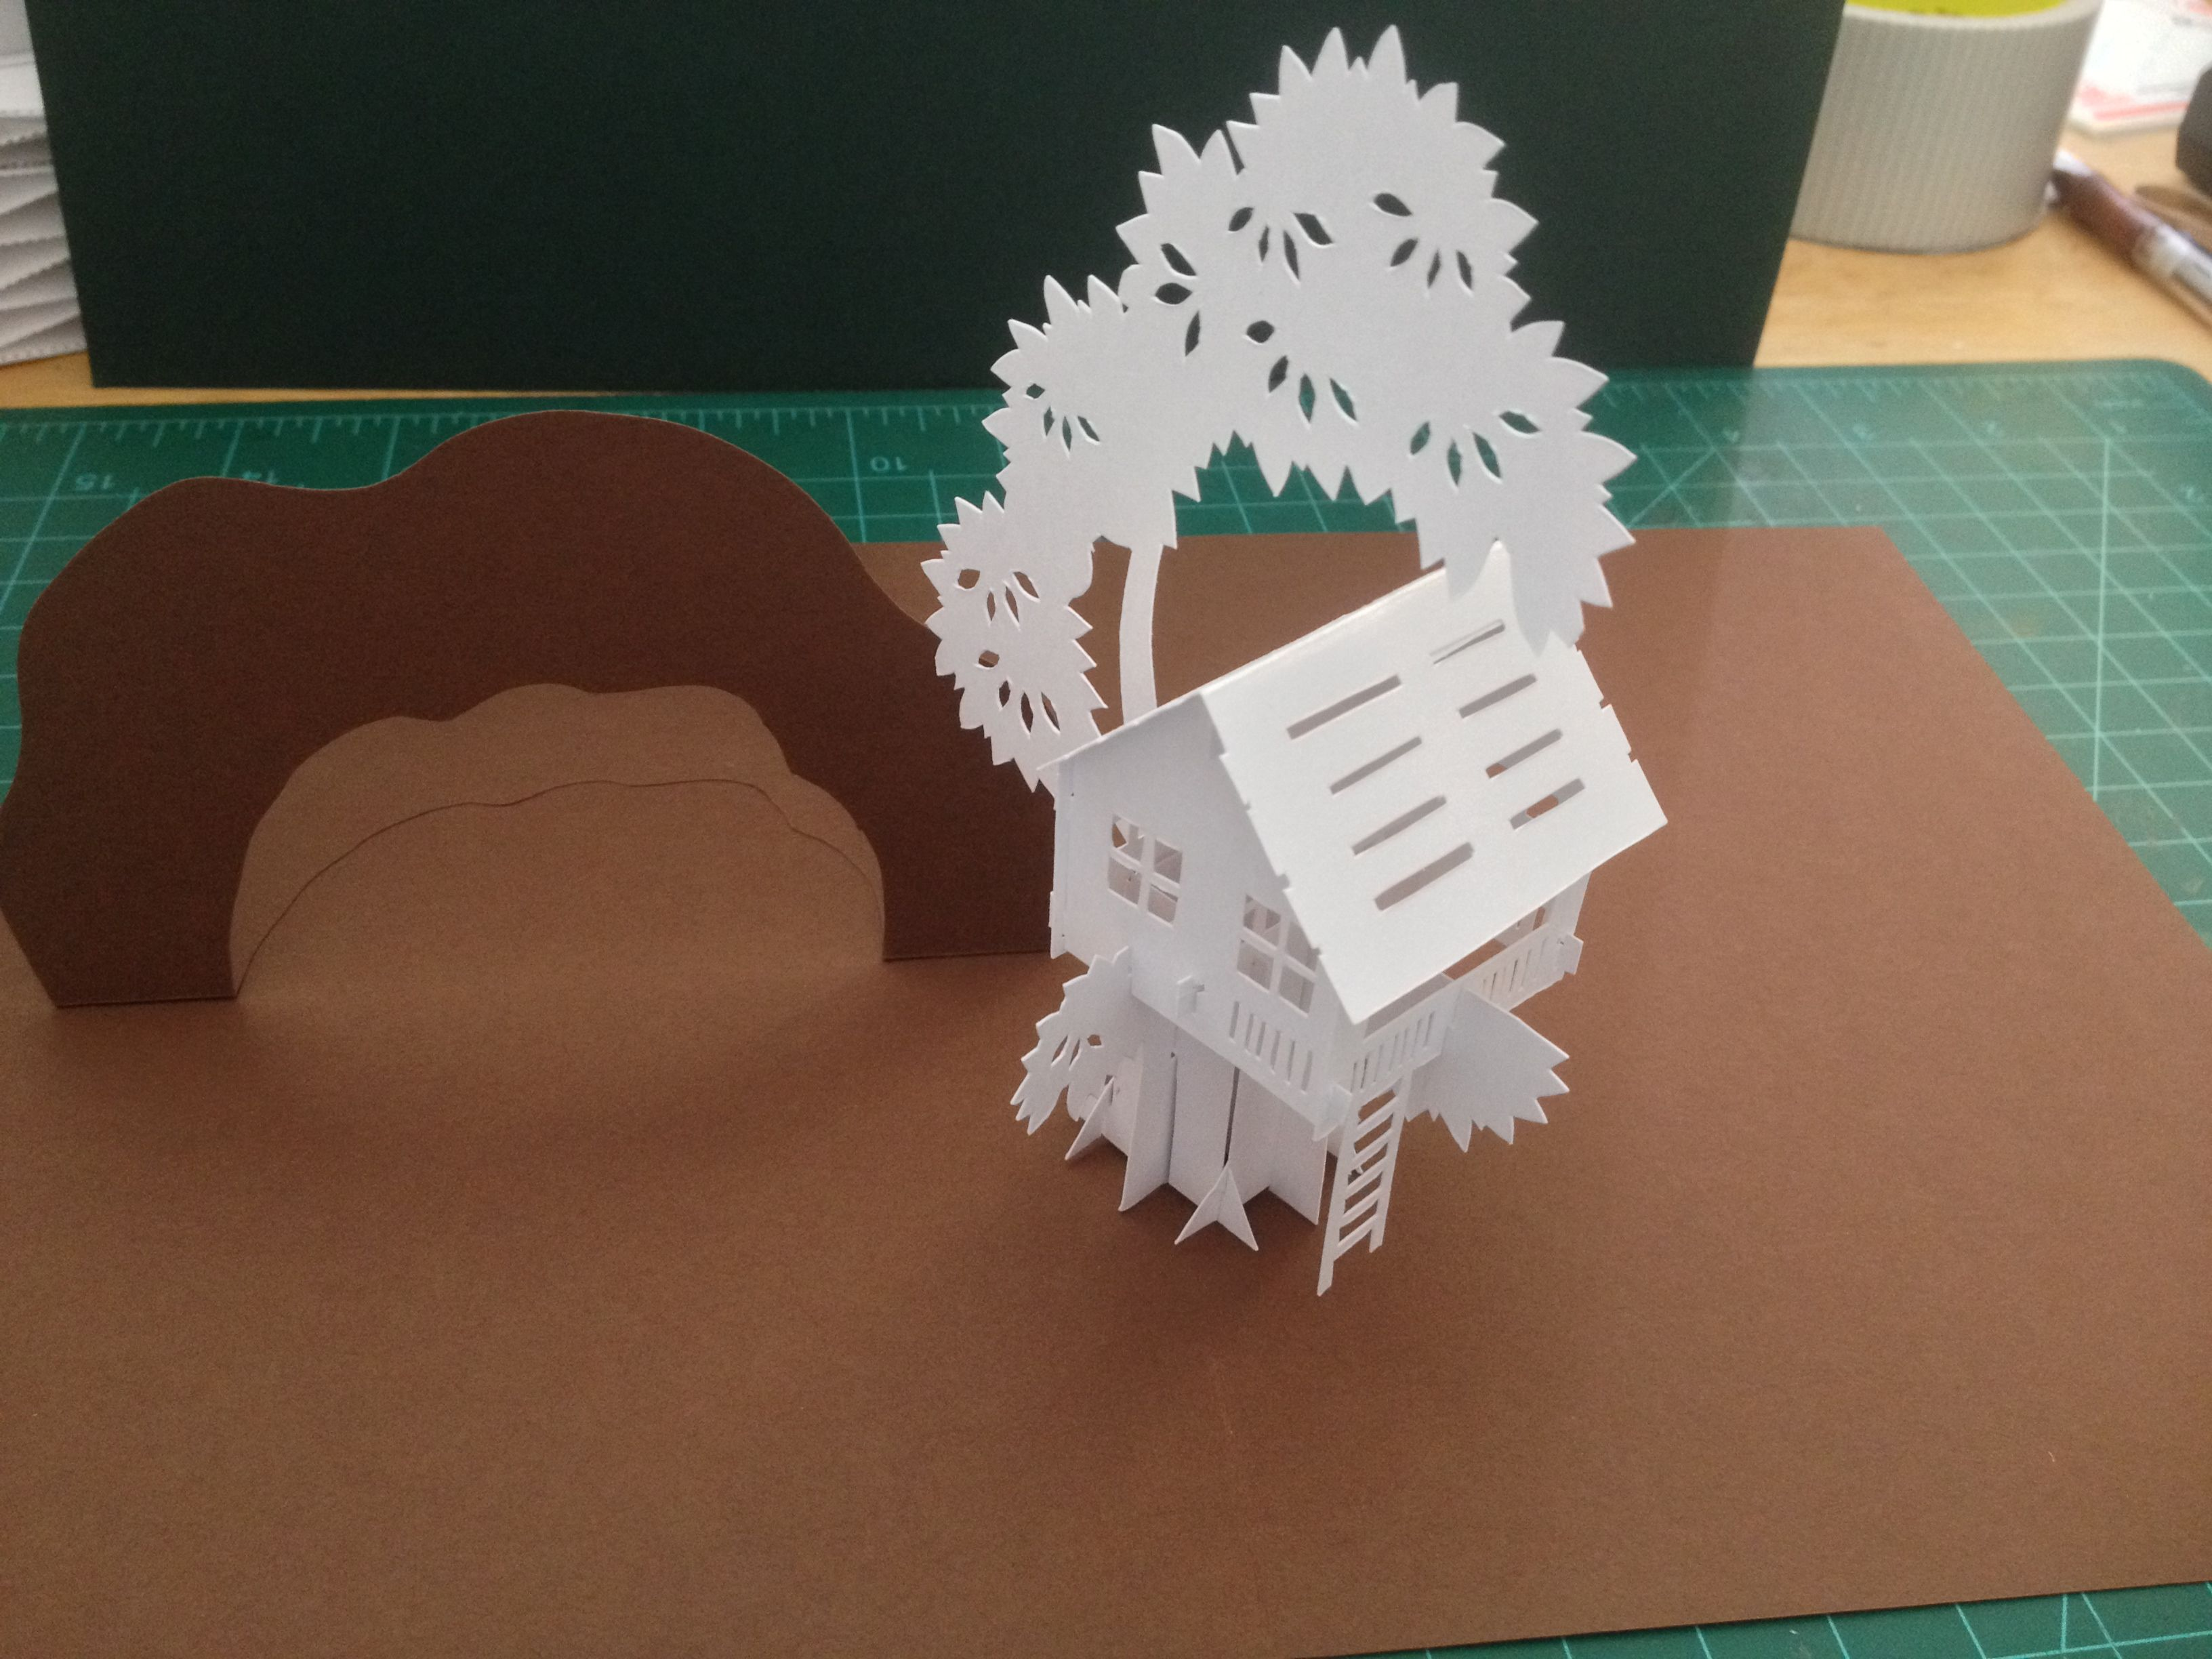 Tree House Sliceform Pop Up Card Template From Cahier De Kirigami Les Cartes A Systemes N 15 Pop Up Card Templates Paper Pop Pop Up Cards